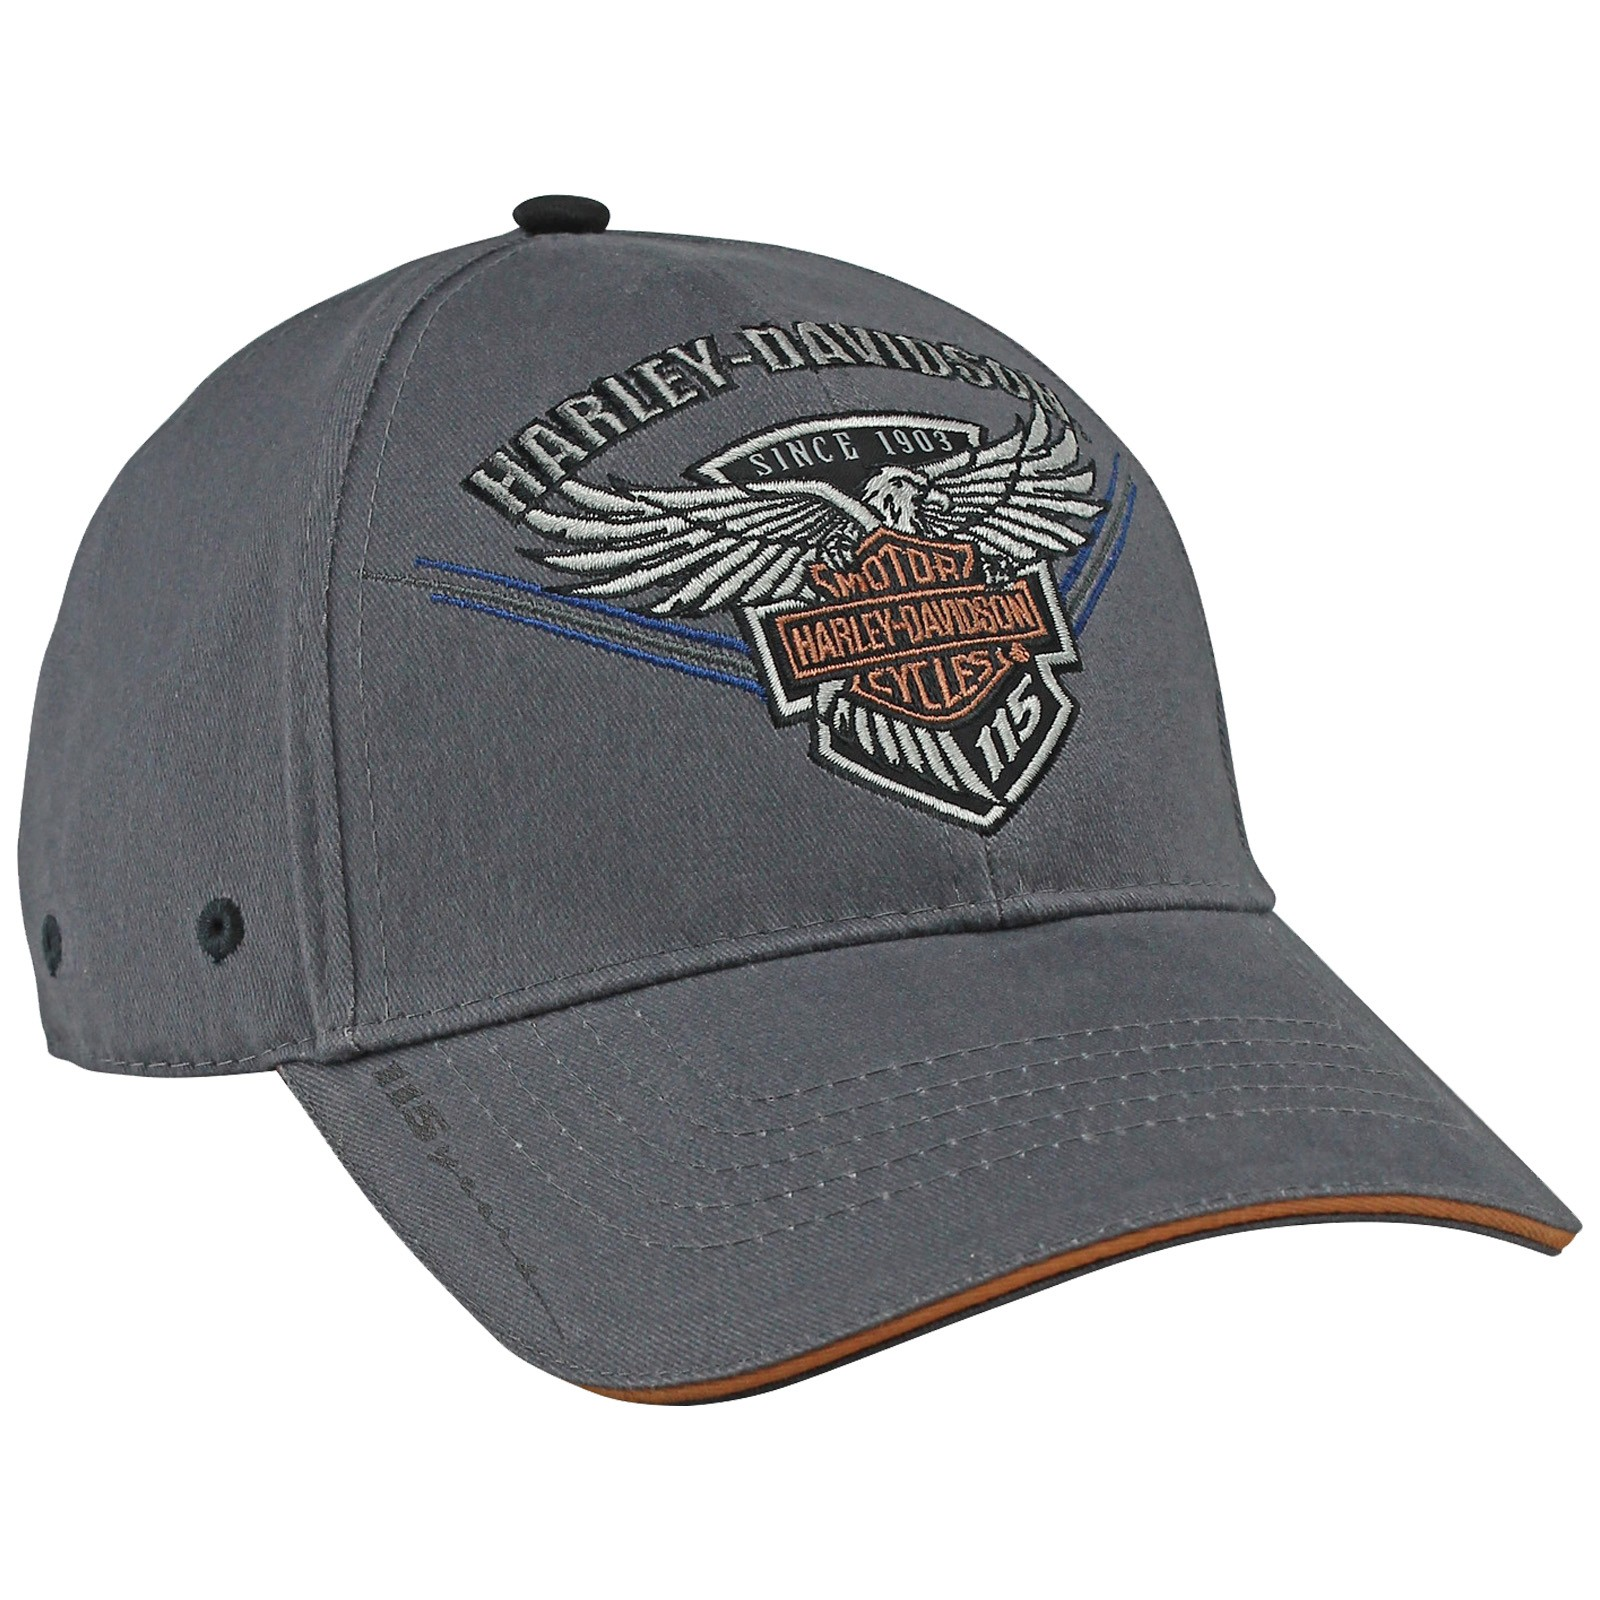 Harley-Davidson 115th Anniversary Edition Ballcap - 115 Eagle | Overseas Tour